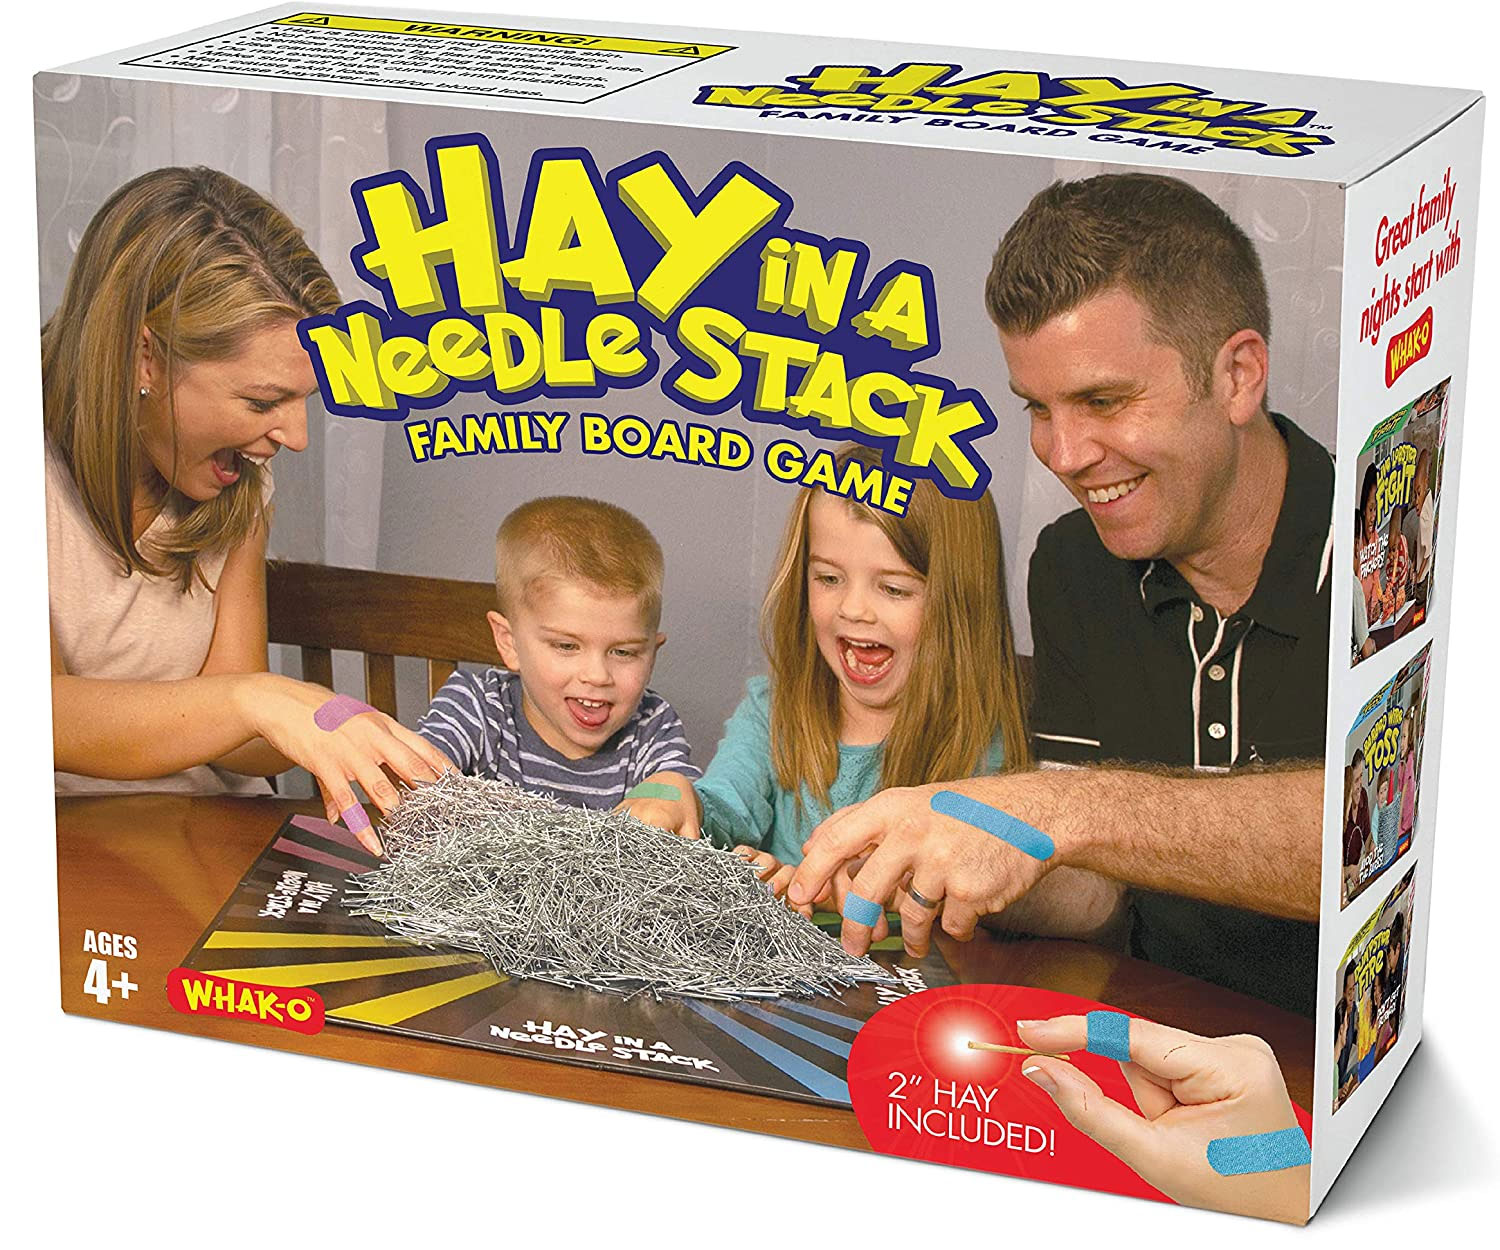 Hay In A Needle Stack Game